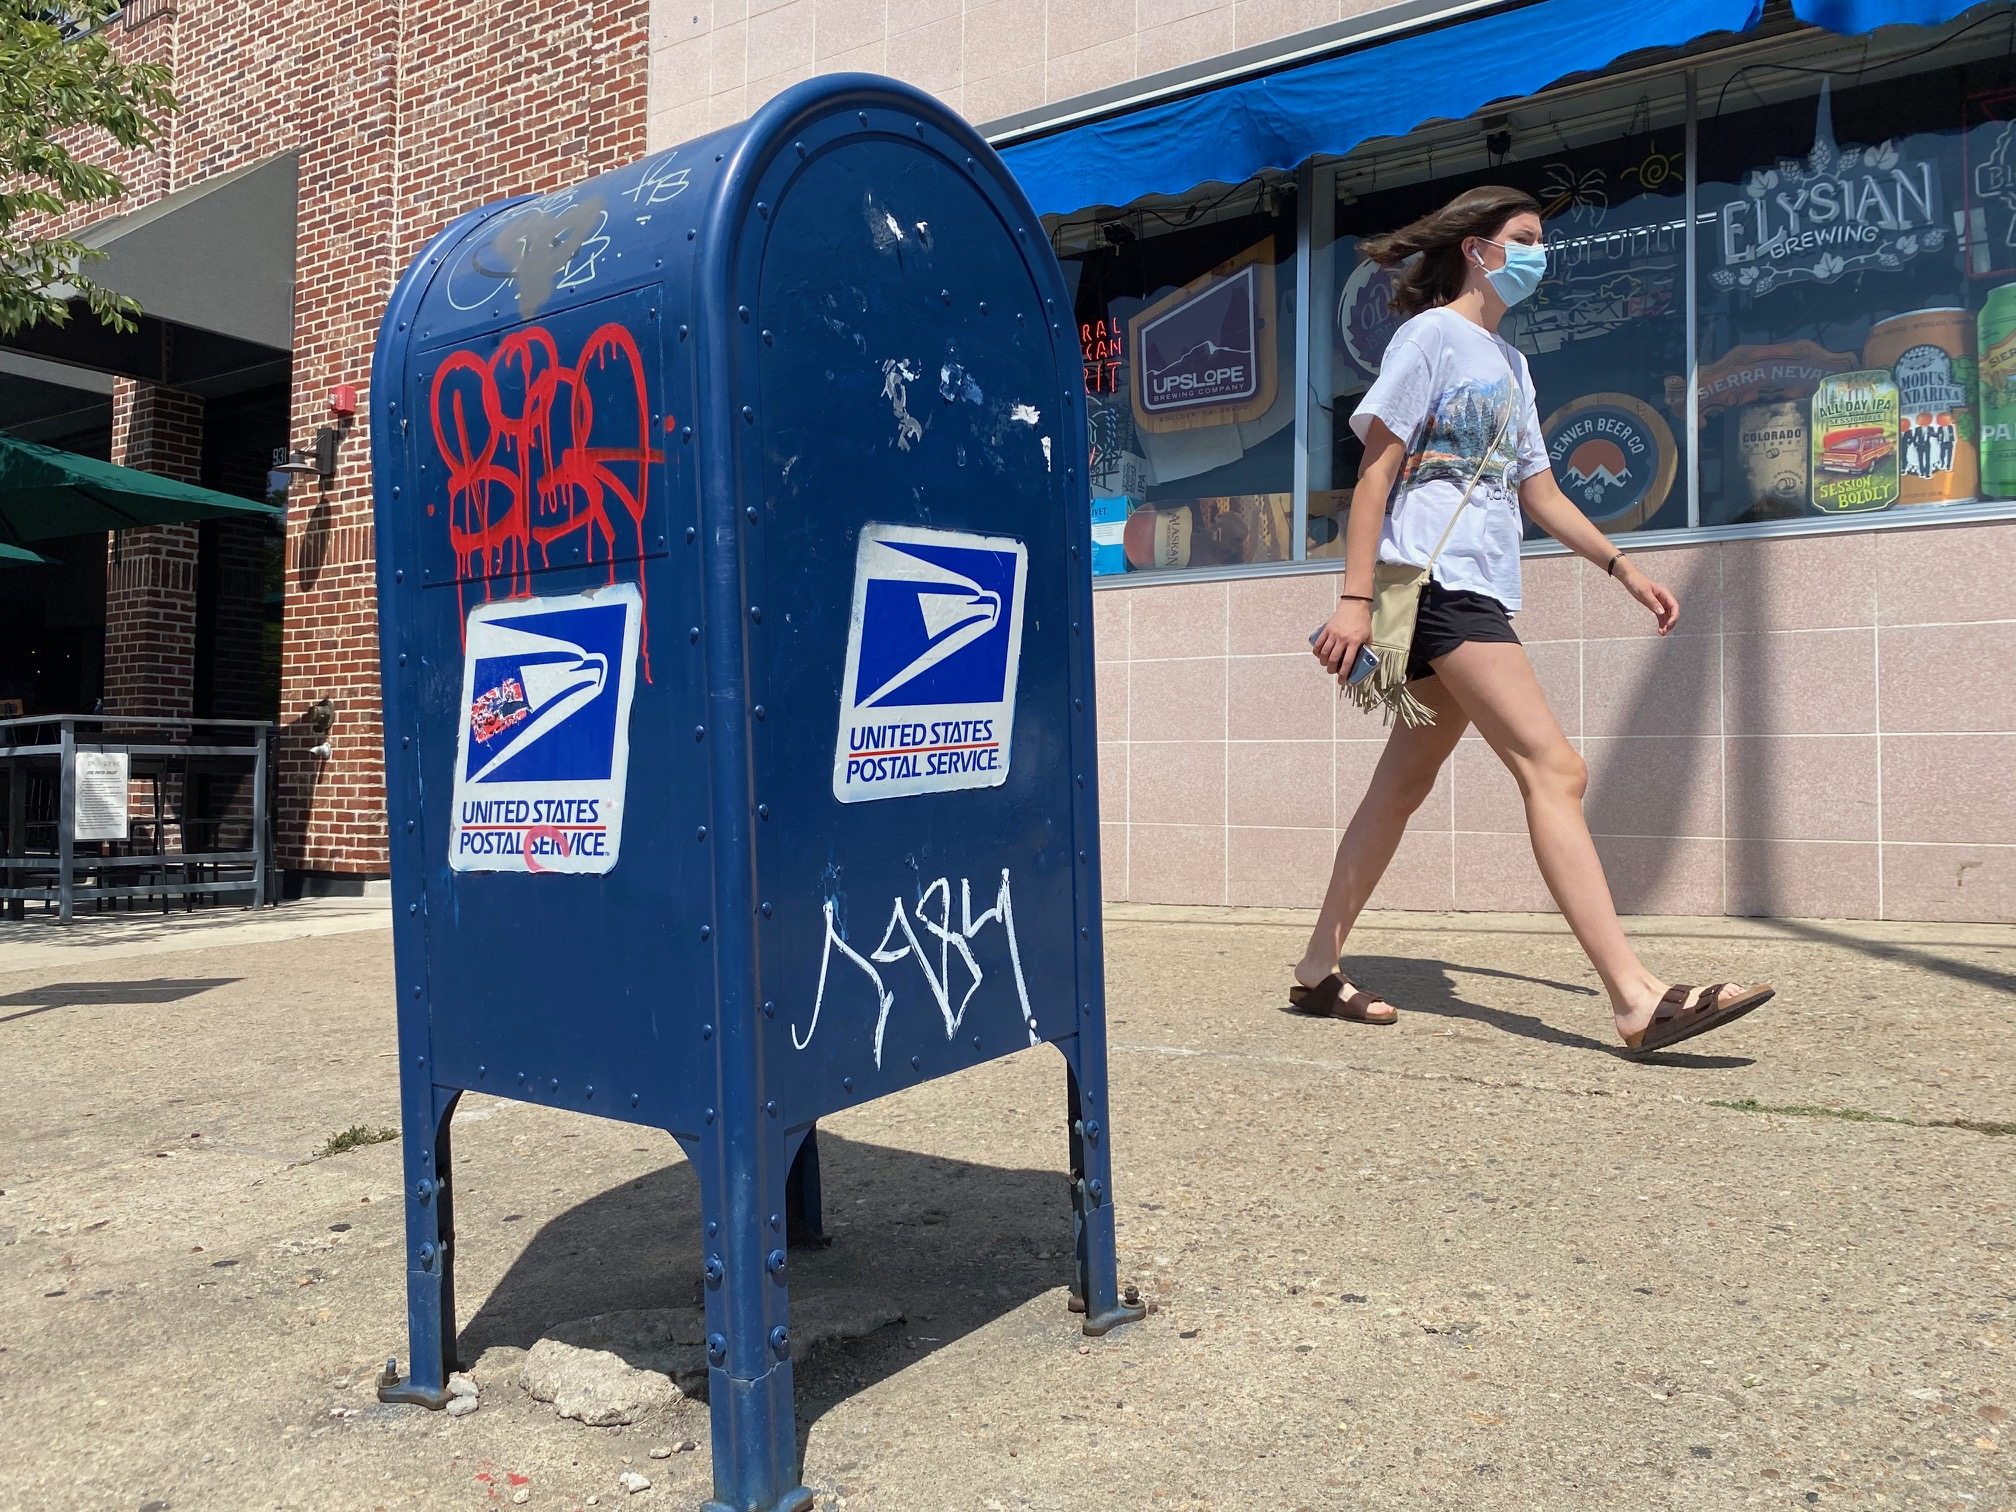 Postmaster general says he's suspending post office overhaul until after the election